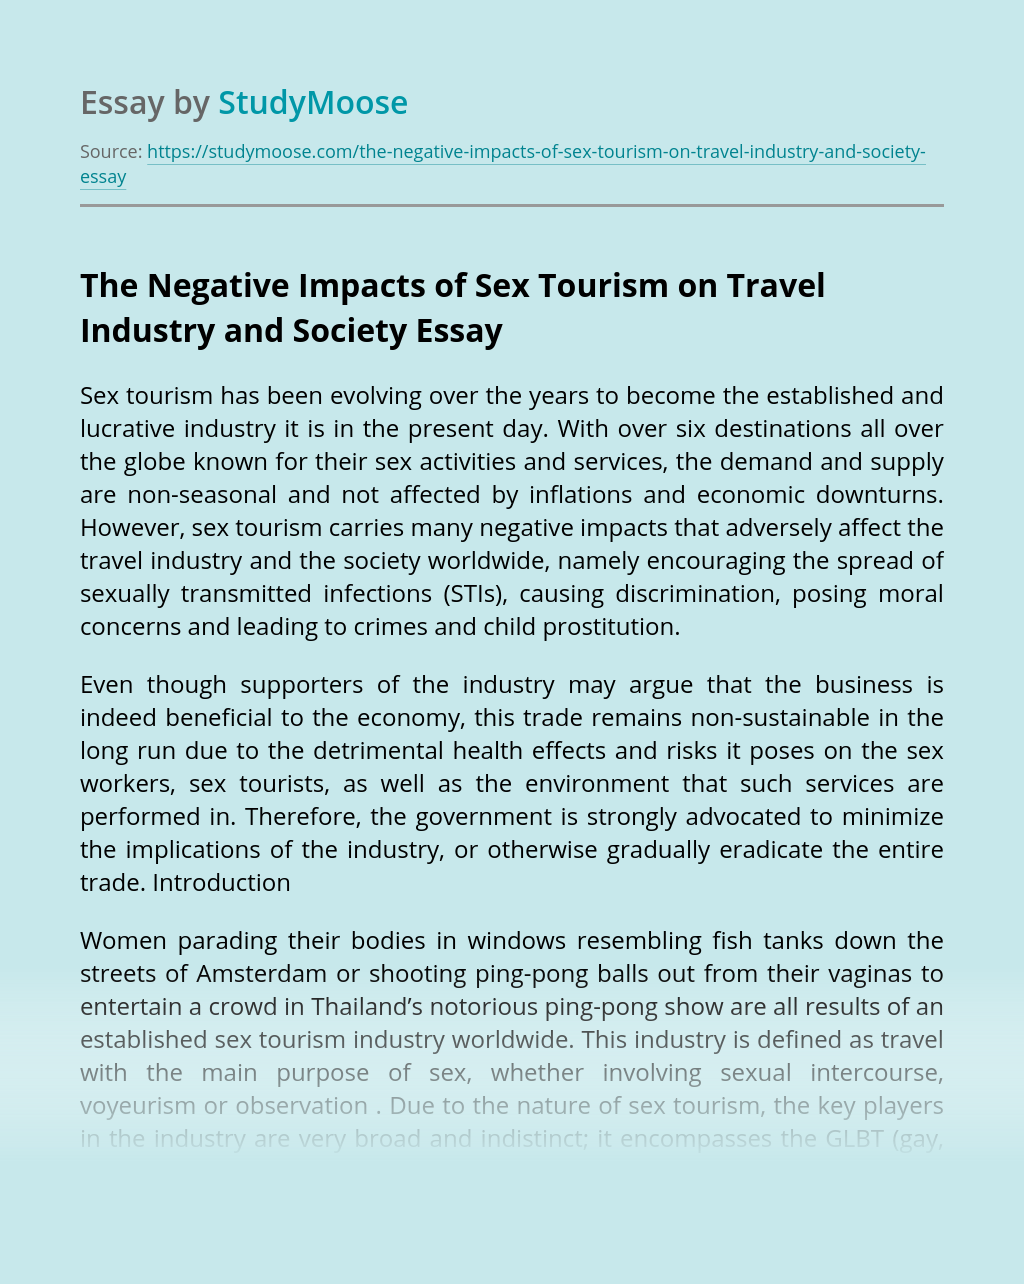 The Negative Impacts of Sex Tourism on Travel Industry and Society